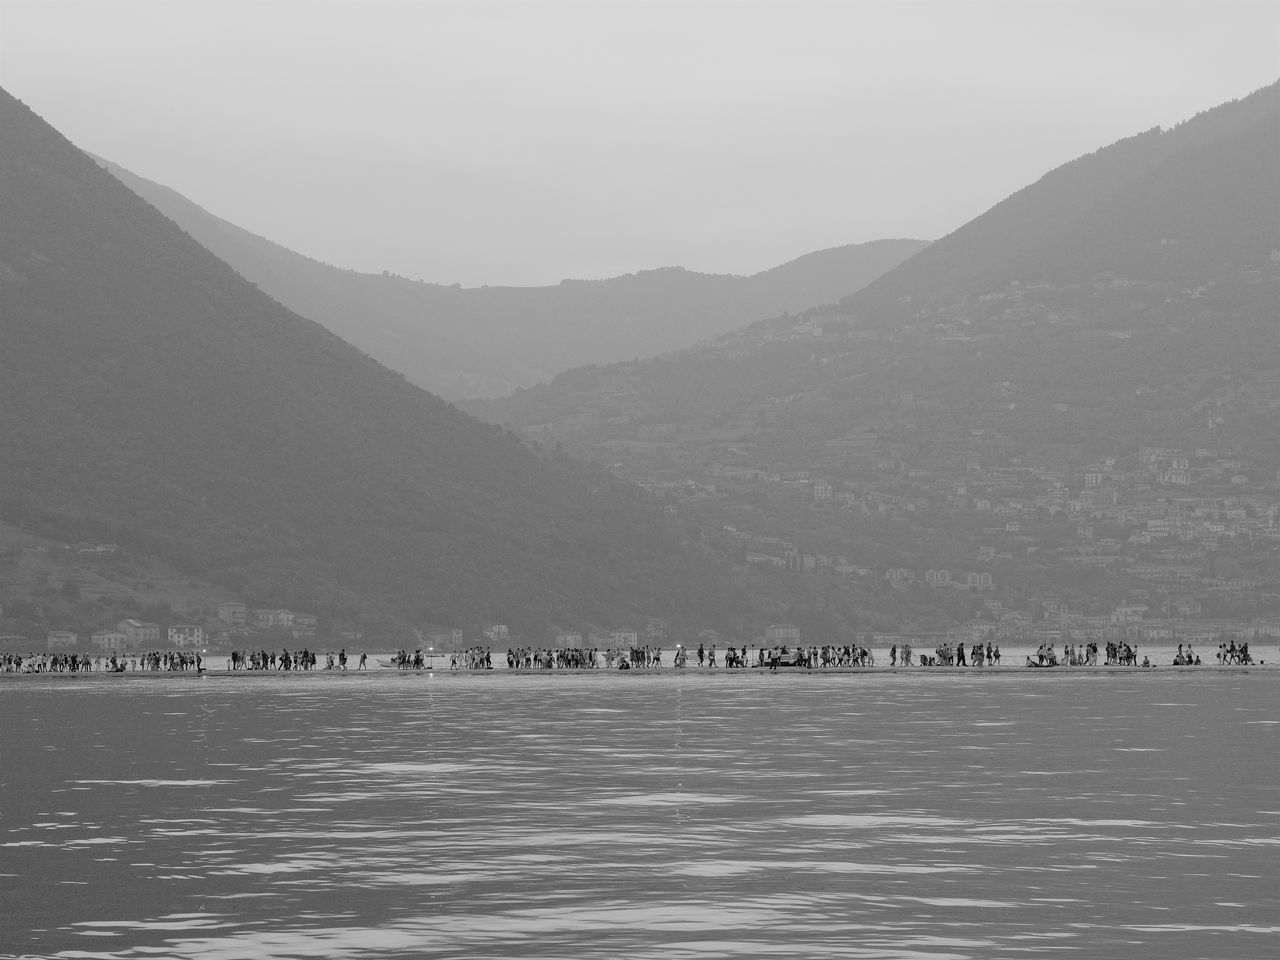 Art Beauty In Nature Christo Day Floating Piers Hill Idyllic Iseo Lake Italy Lake Landscape Mountain Mountain Range Nature No People Non Urban Scene Non-urban Scene Outdoors Remote Scenics Sky Tranquil Scene Tranquility Walking On Water Water